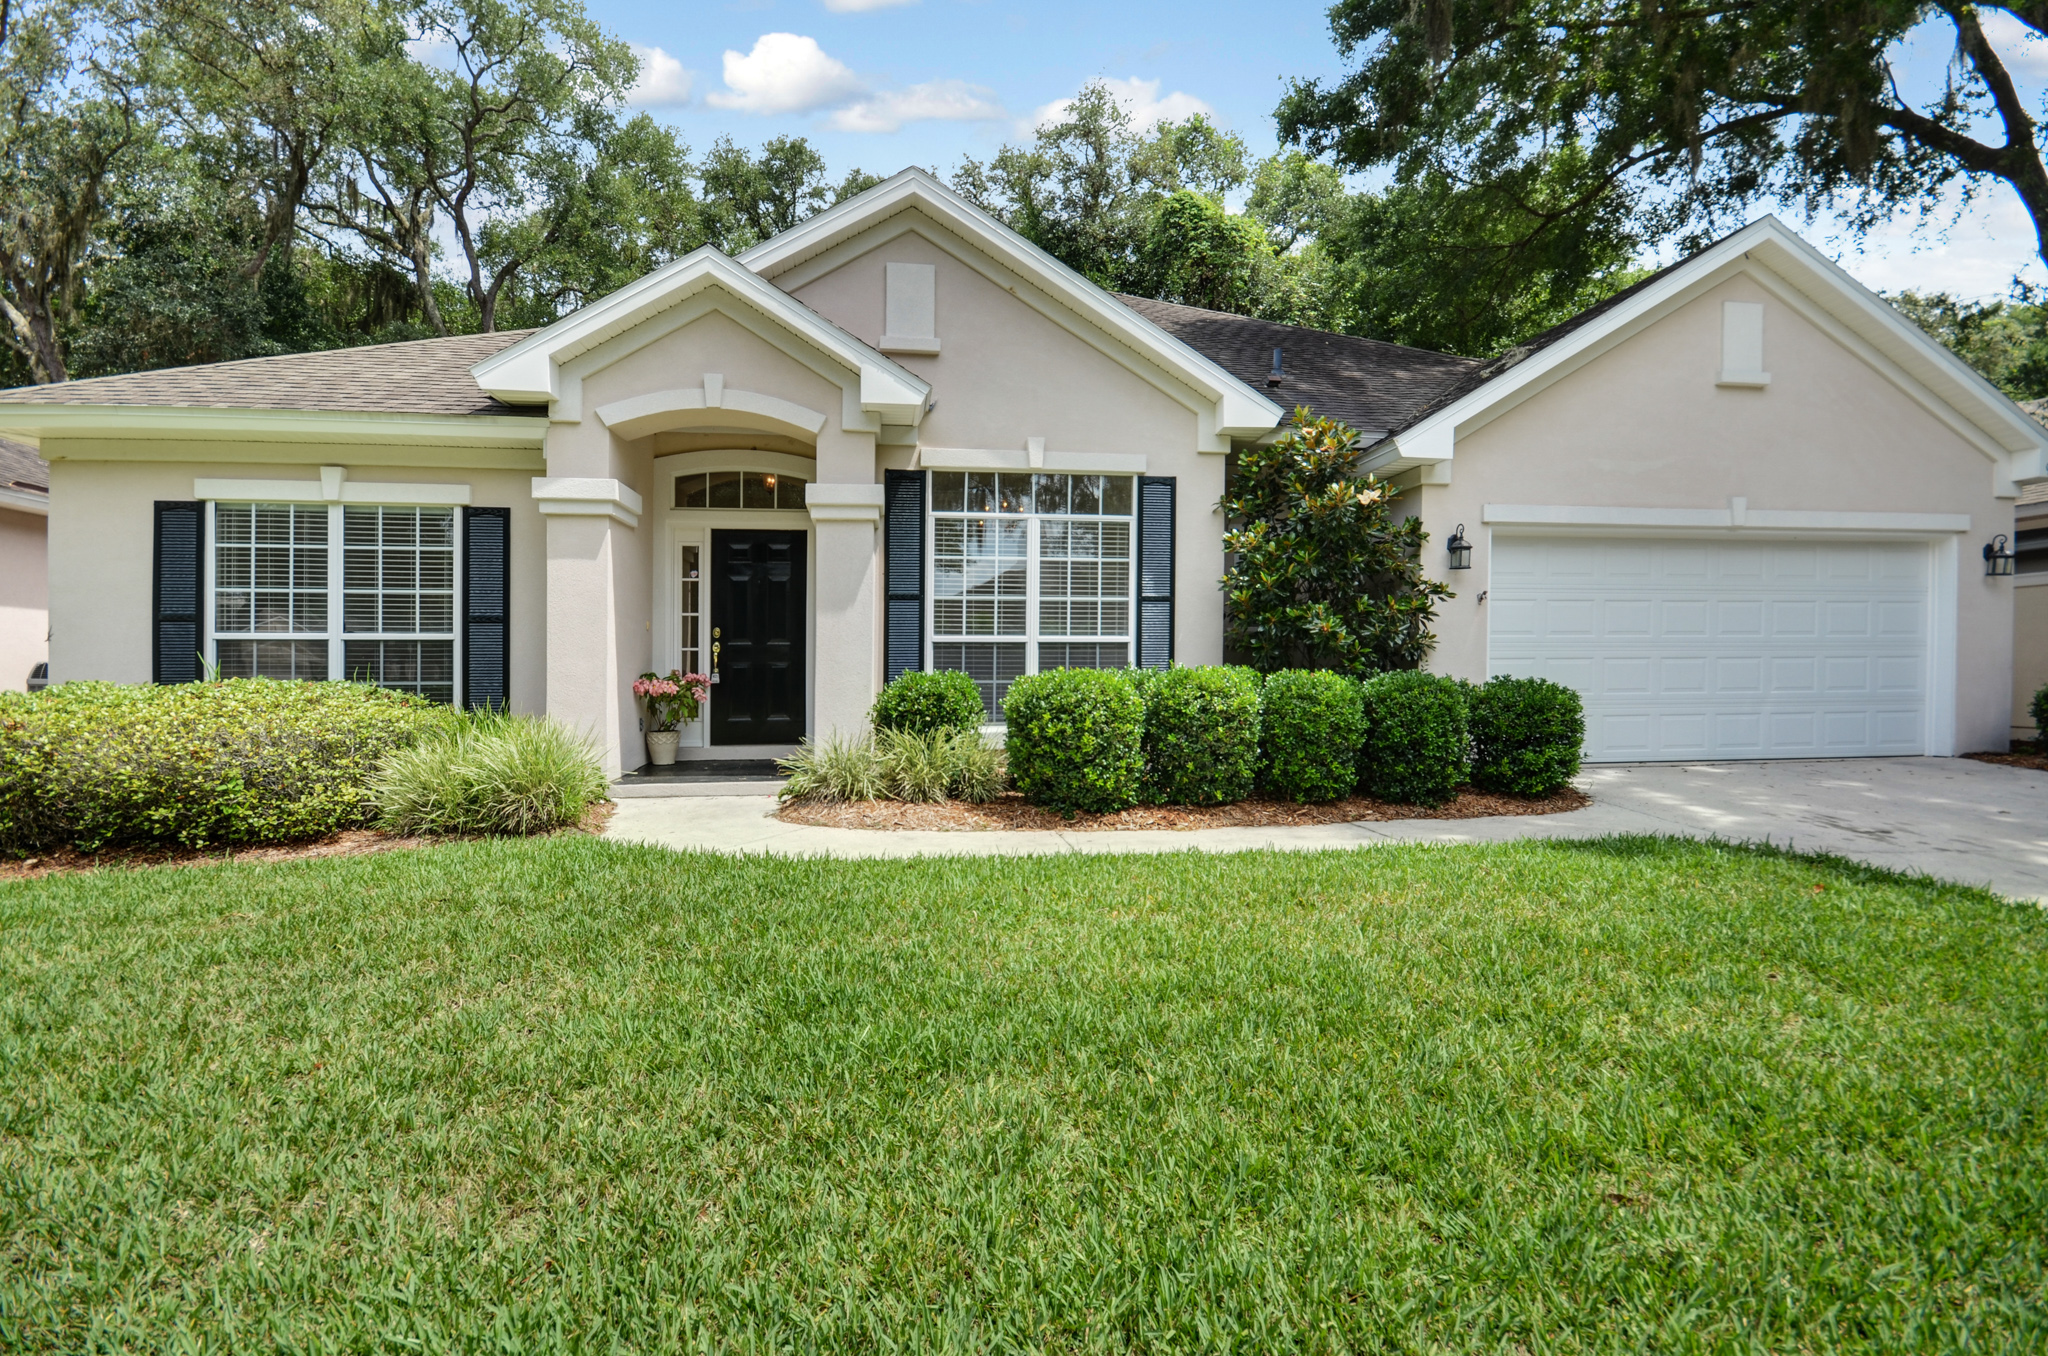 Single Family Home for Sale at Traditional Home in Desirabe Amelia Island Community 95090 Woodberry Lane Amelia Island, Florida 32034 United States